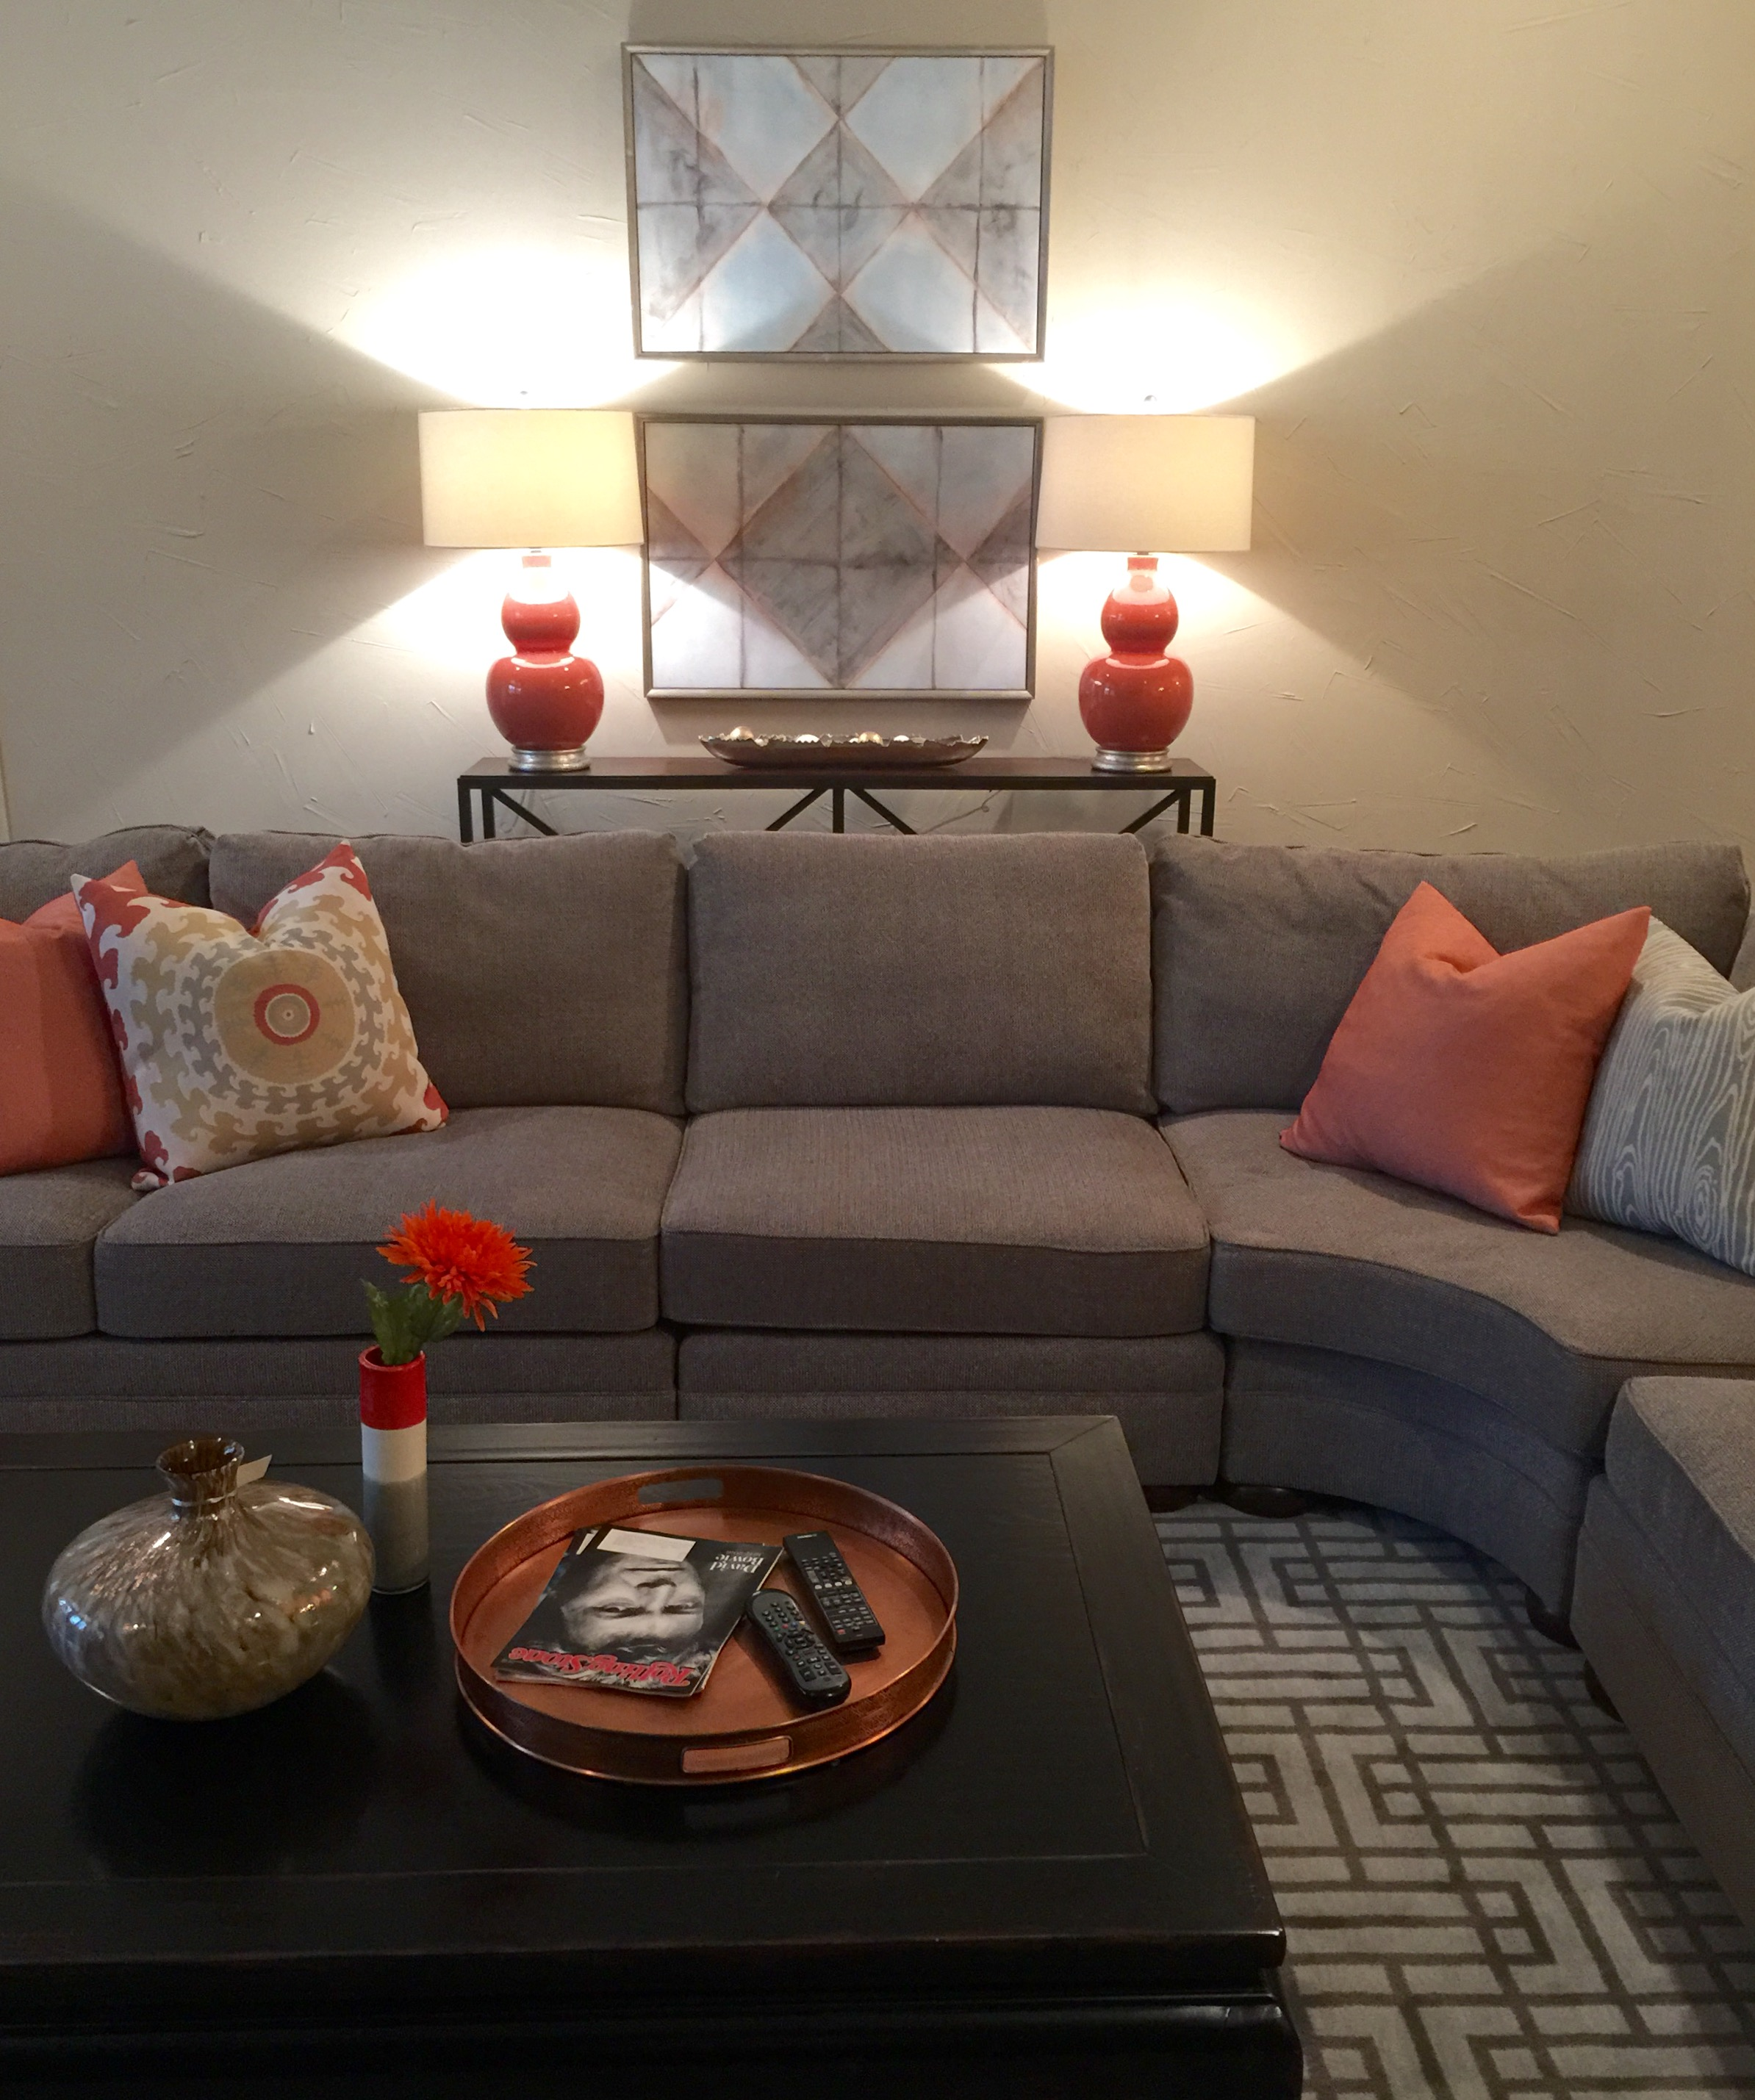 Gray sectional with colorful pillows and accents - Carla Aston: Designer #pillows #sofapillows